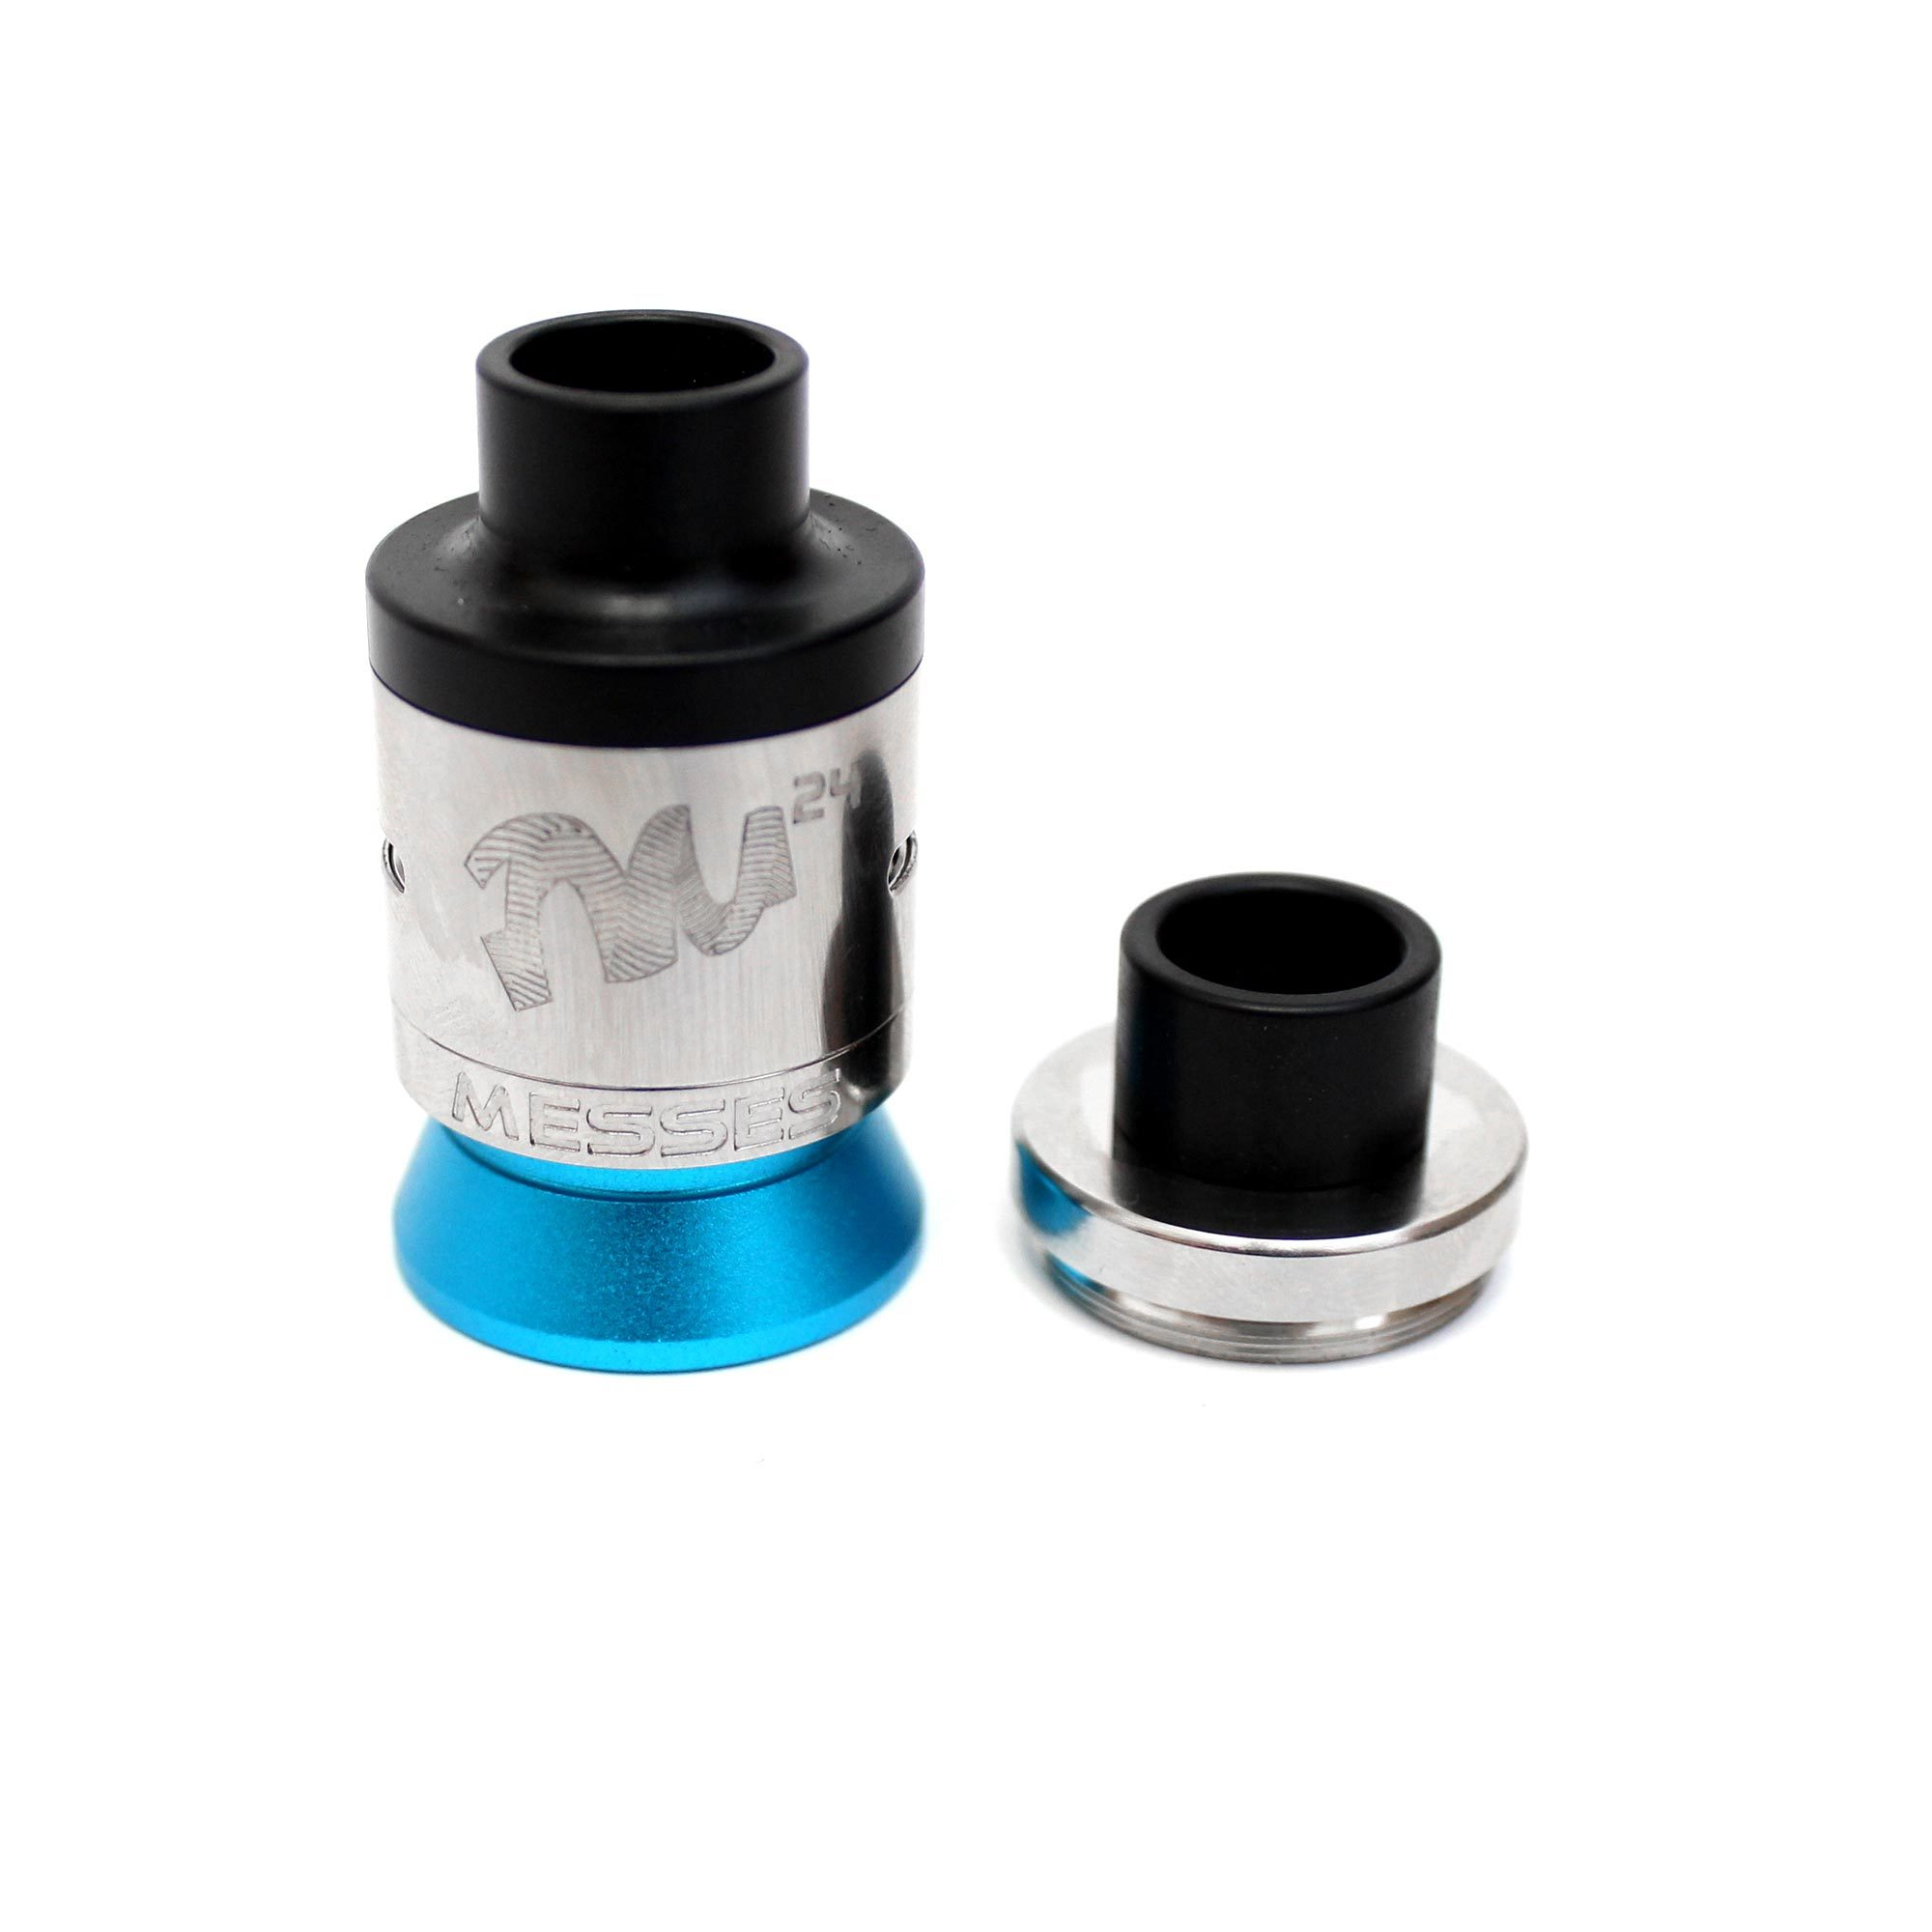 Дрипка Twisted Messes 24mm (Clone) в разборе